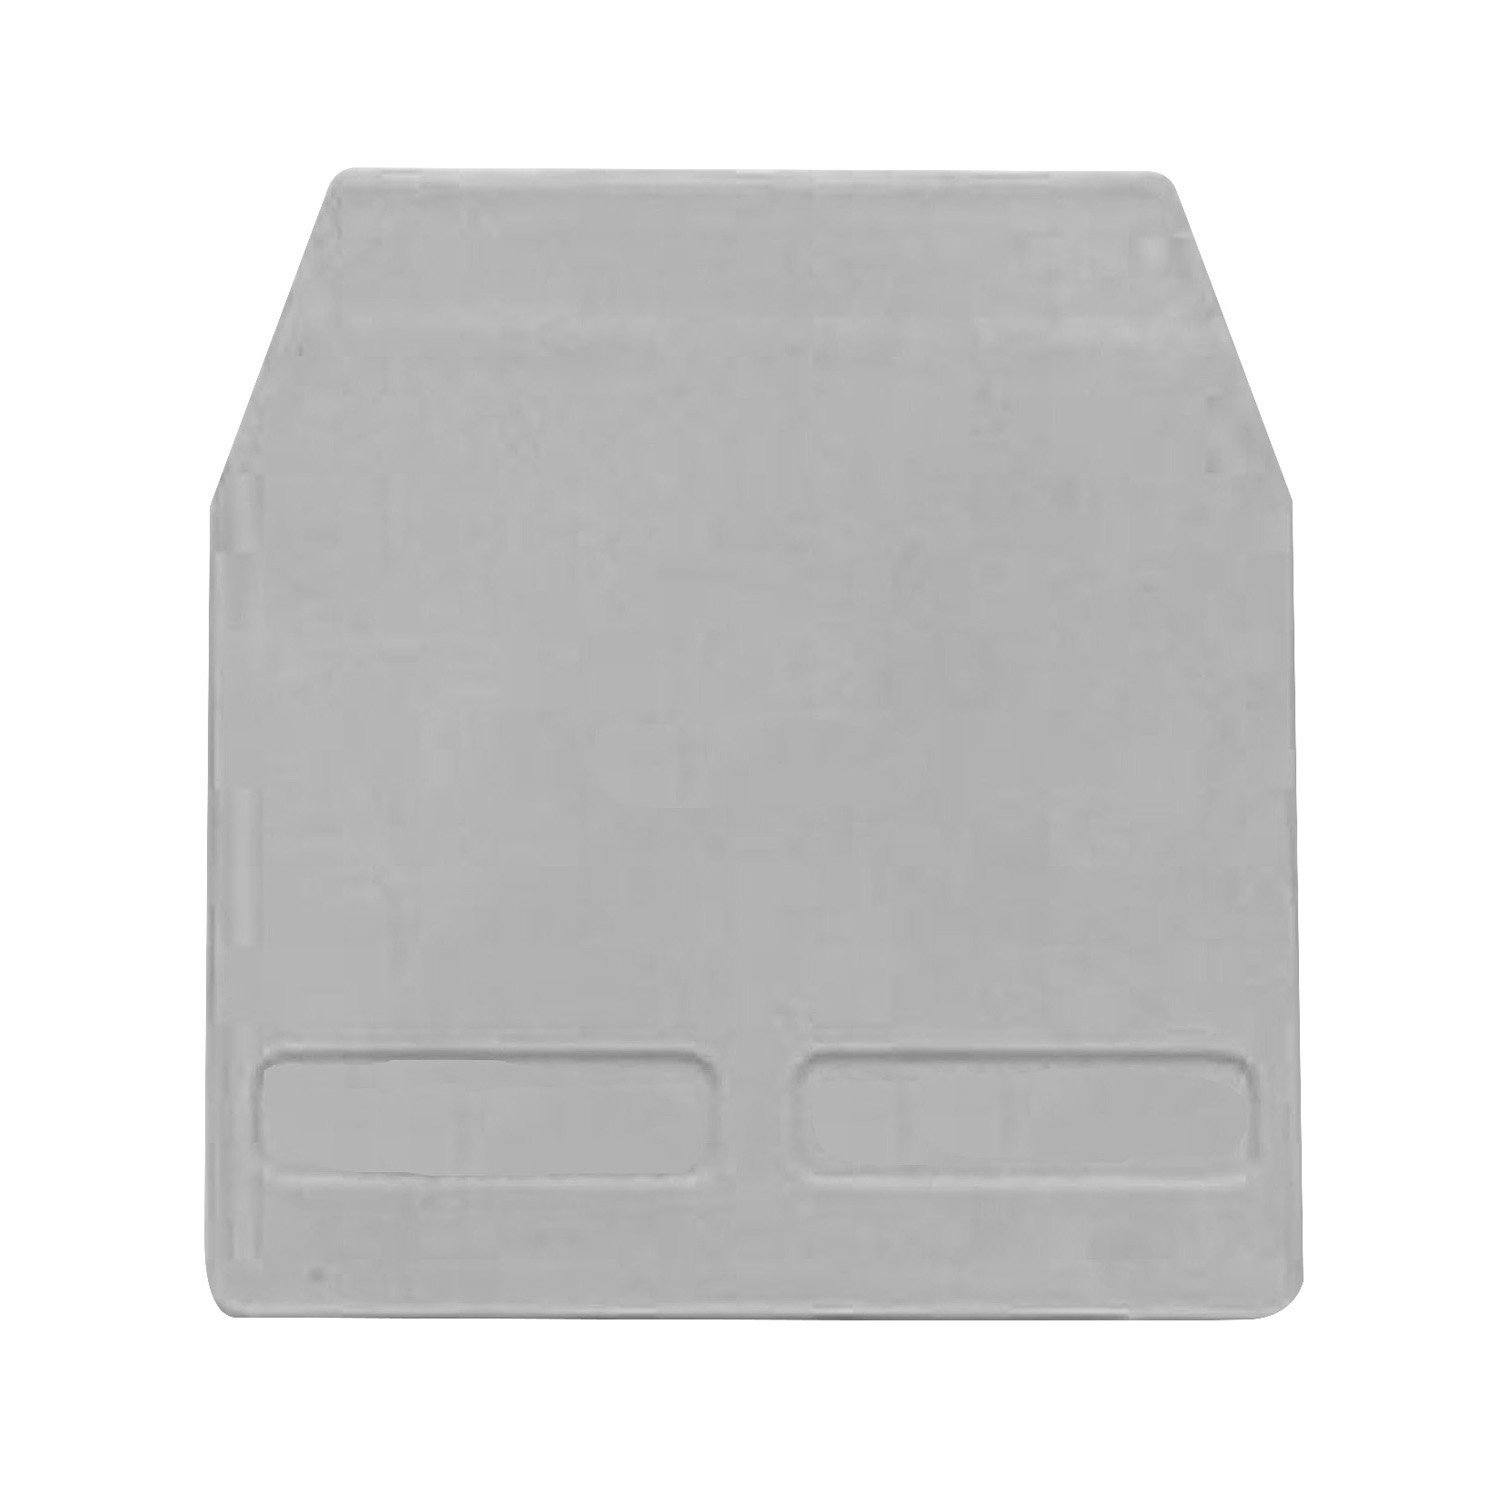 ASI HB101GR End Cover for a HB100GR Spring Clamp Sliding Link Shorting Terminal Block, Gray (Pack of 25)